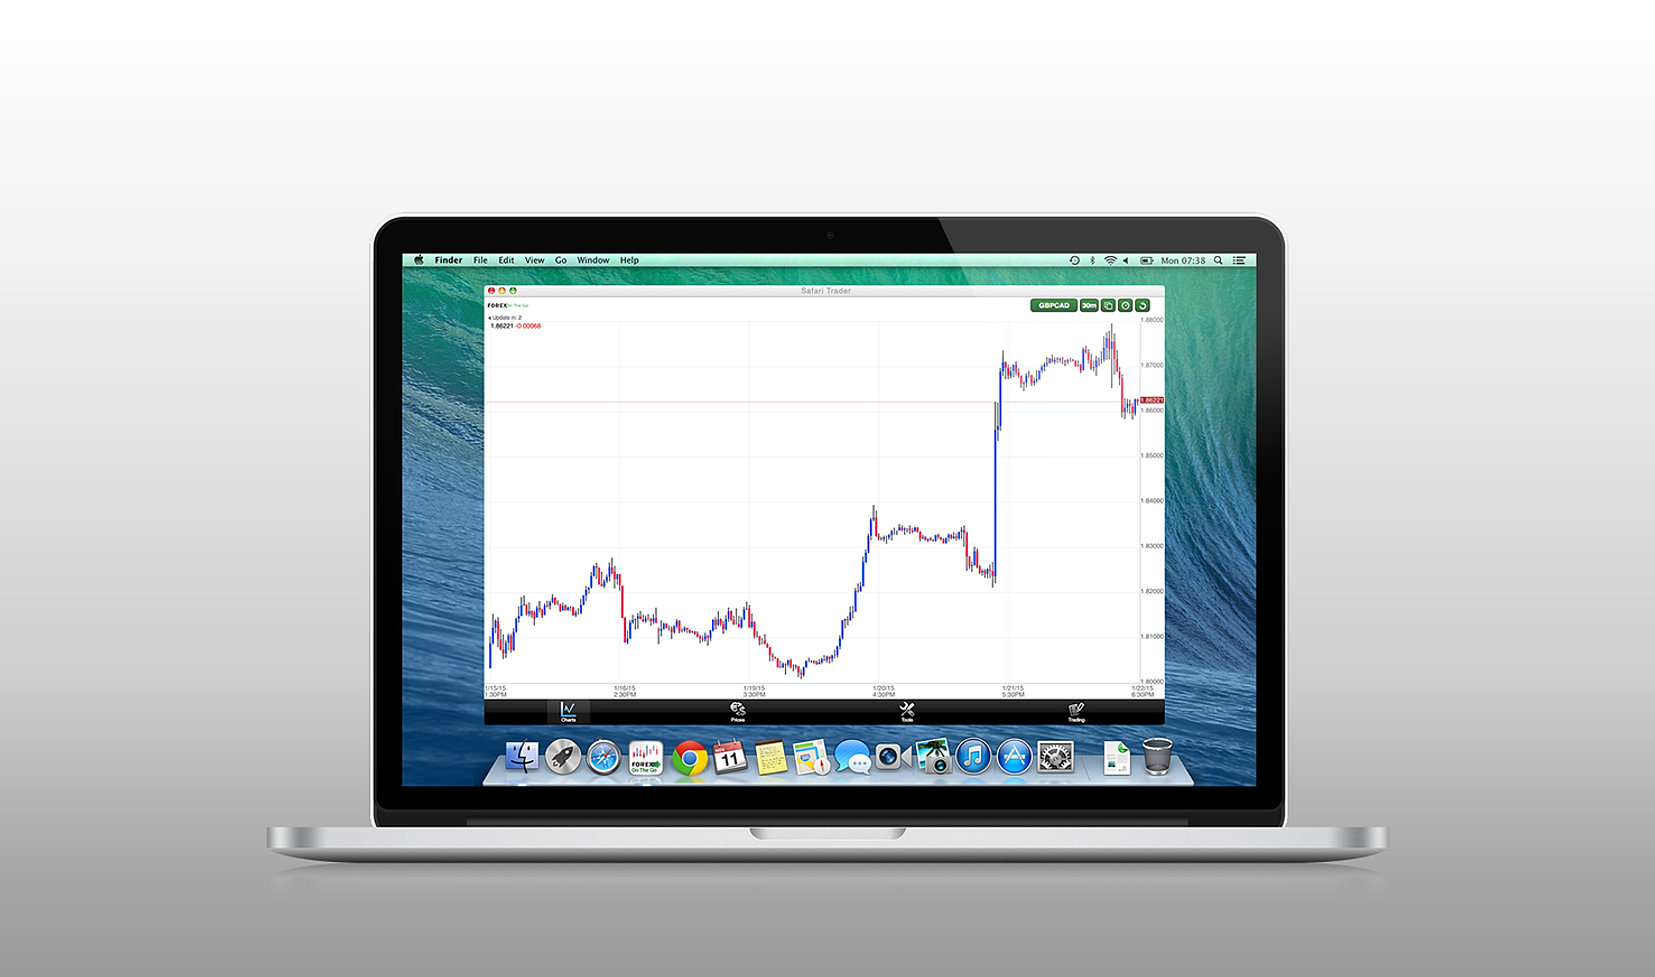 Royal forex trading software